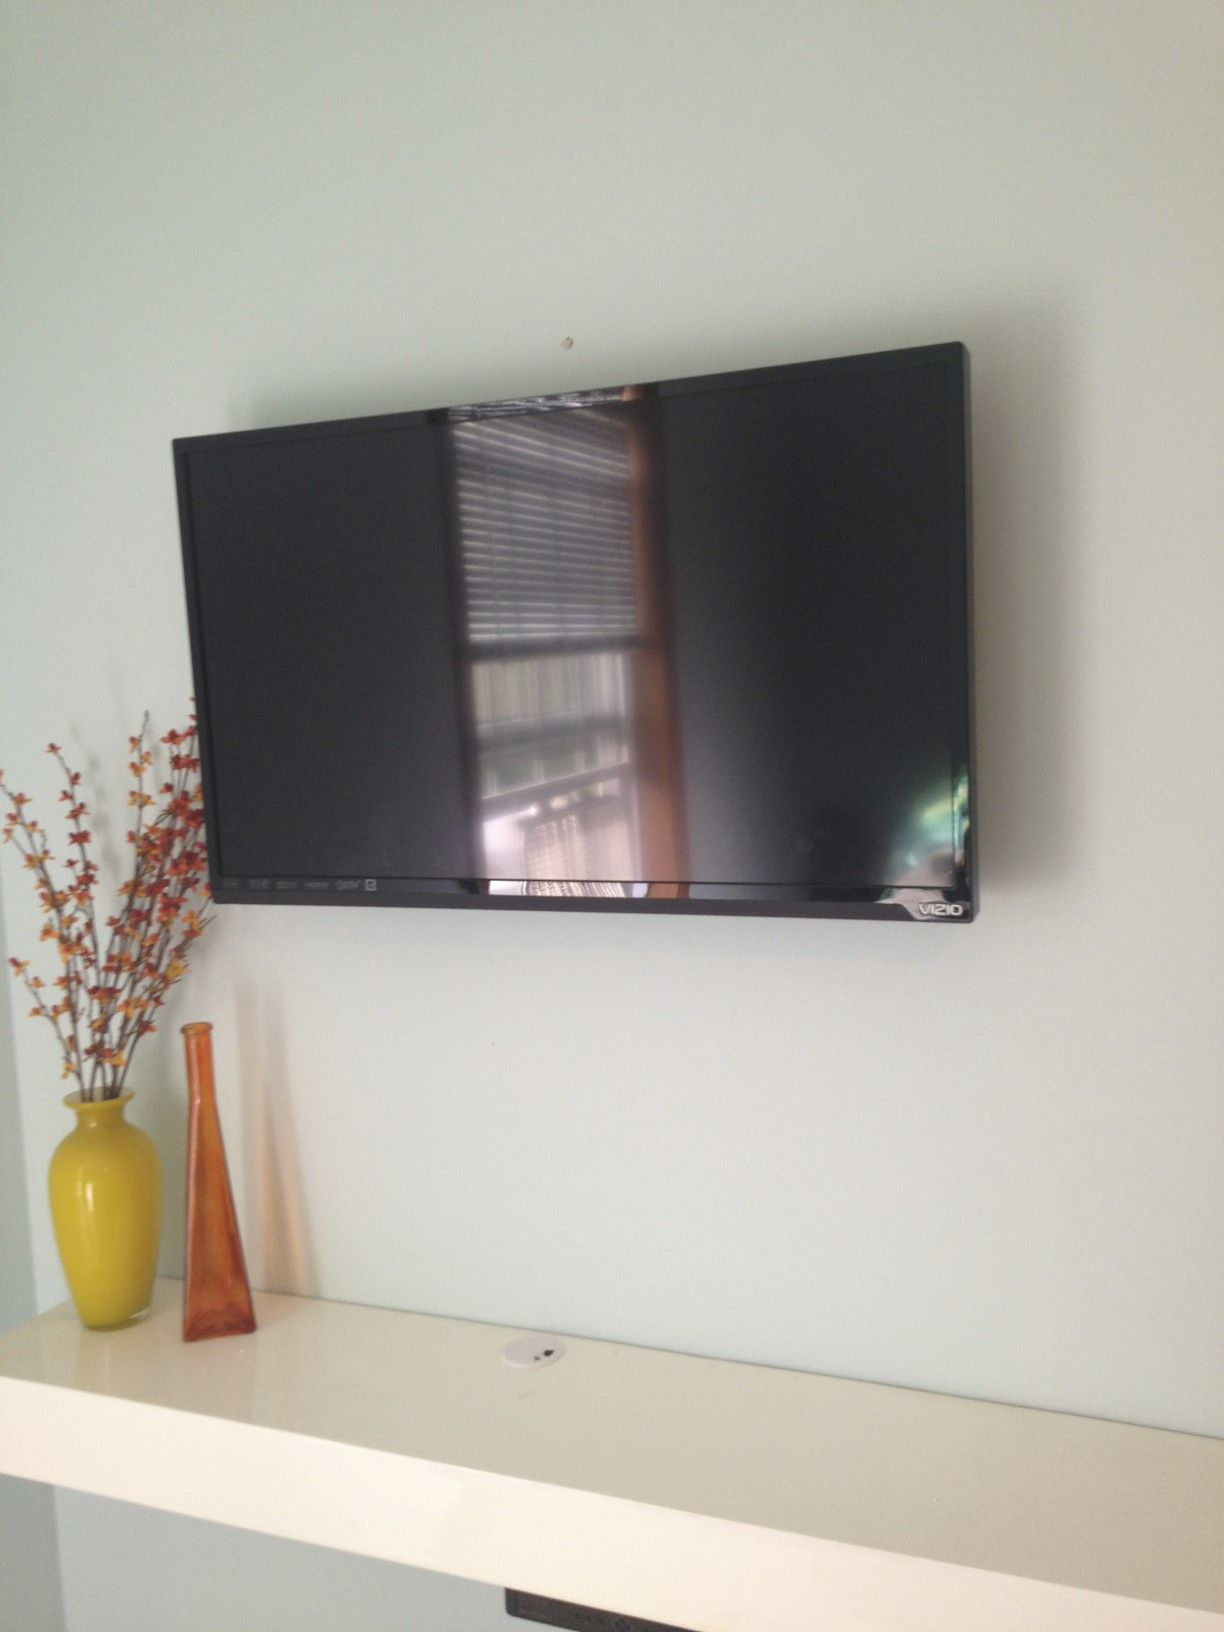 Wall Mounted Television: Hiding Cords | Do It Yourself | Pinterest ...